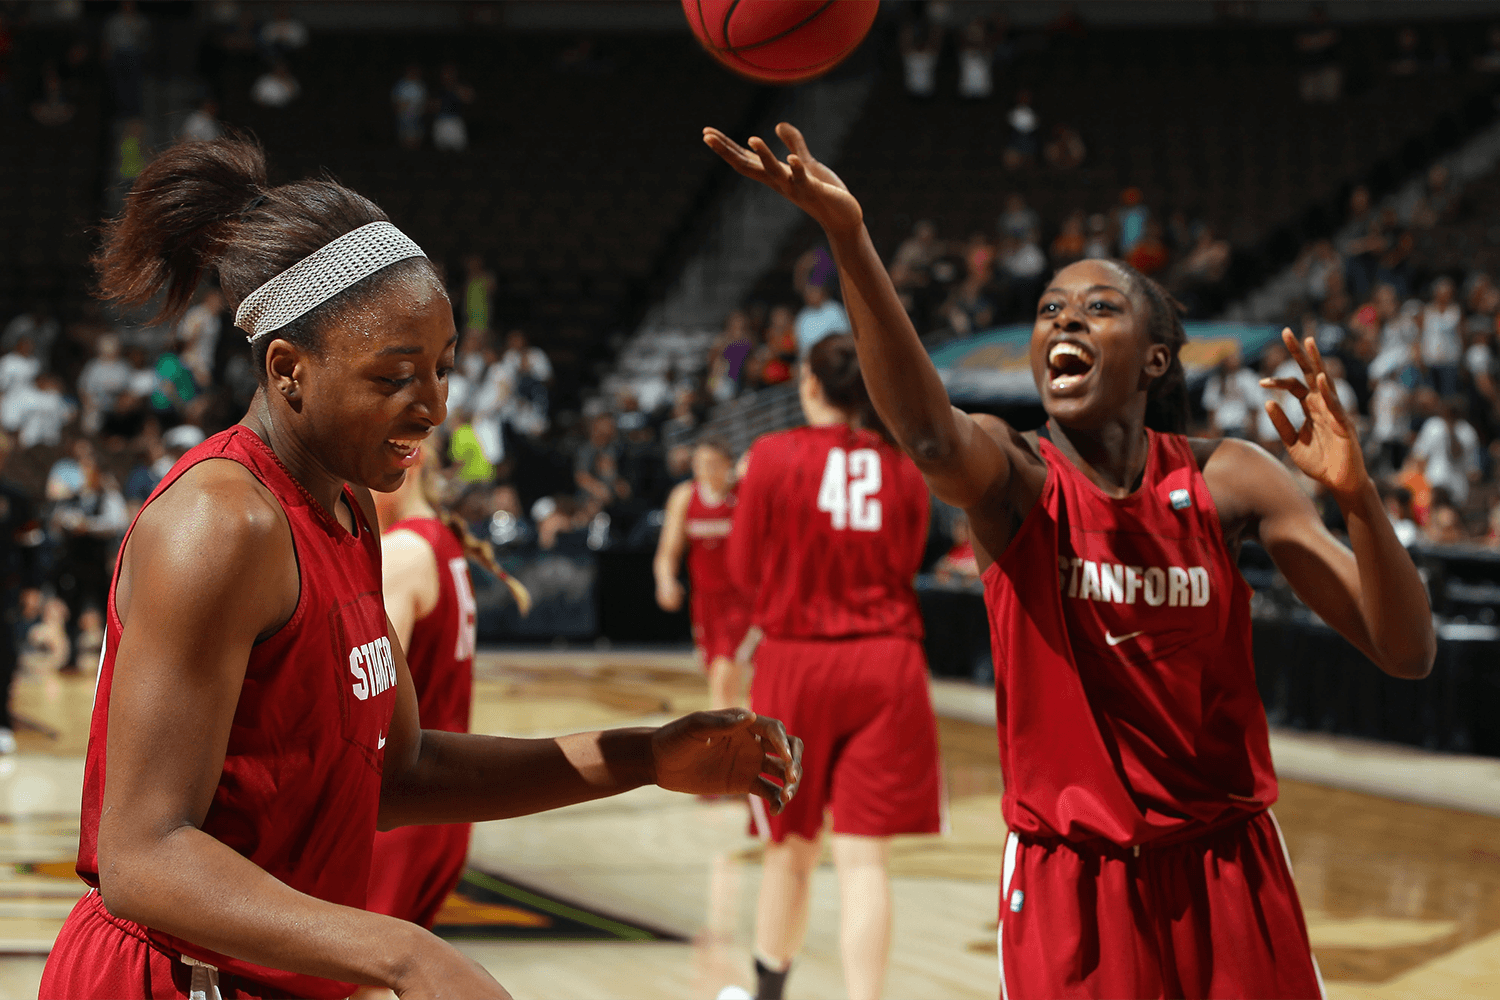 Nneka and Chiney Ogwumike at Stanford. (Doug Pensinger/Getty Images)